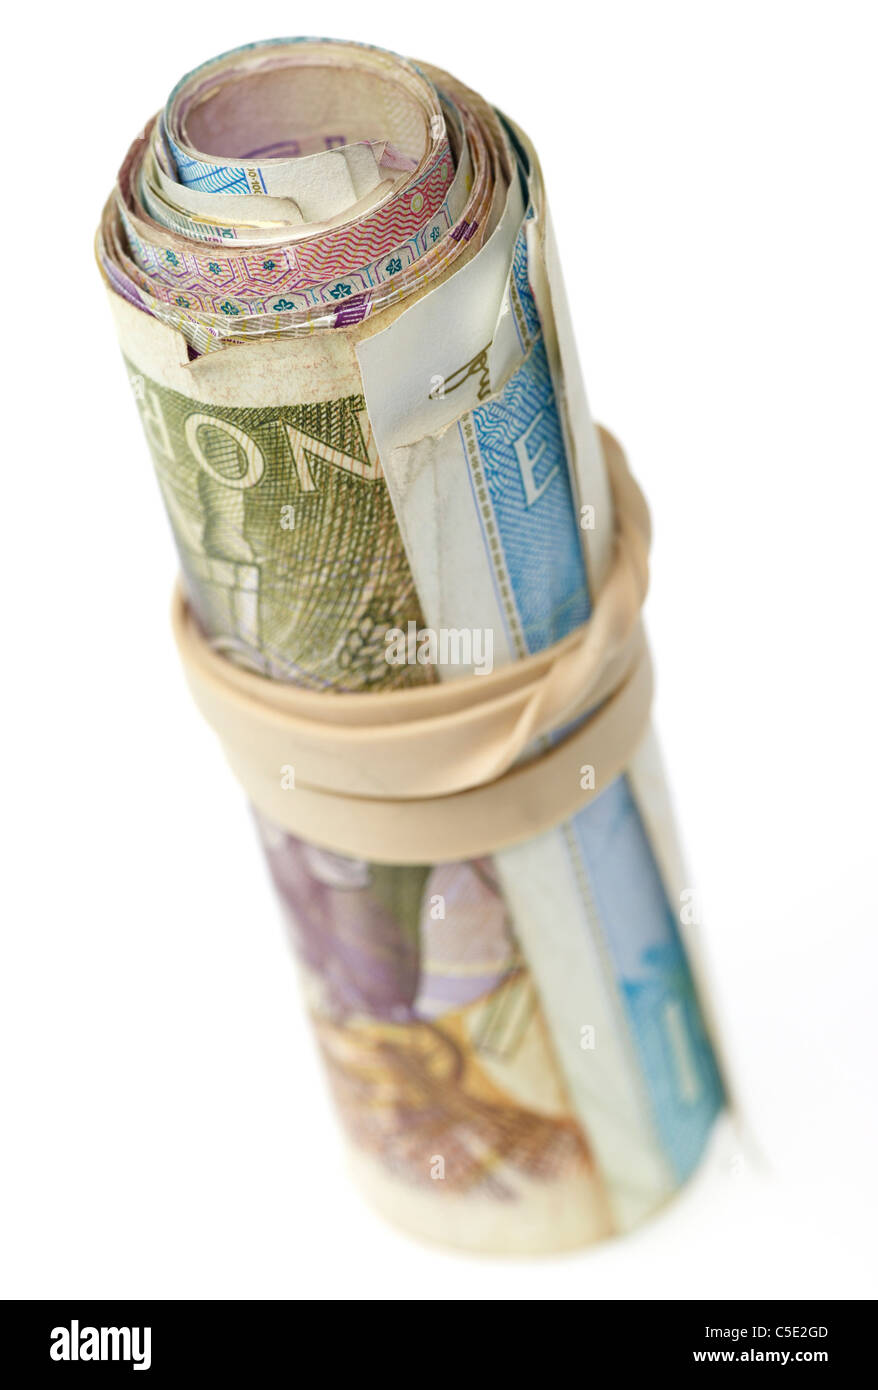 Close-up of rolled banknotes against white background - Stock Image